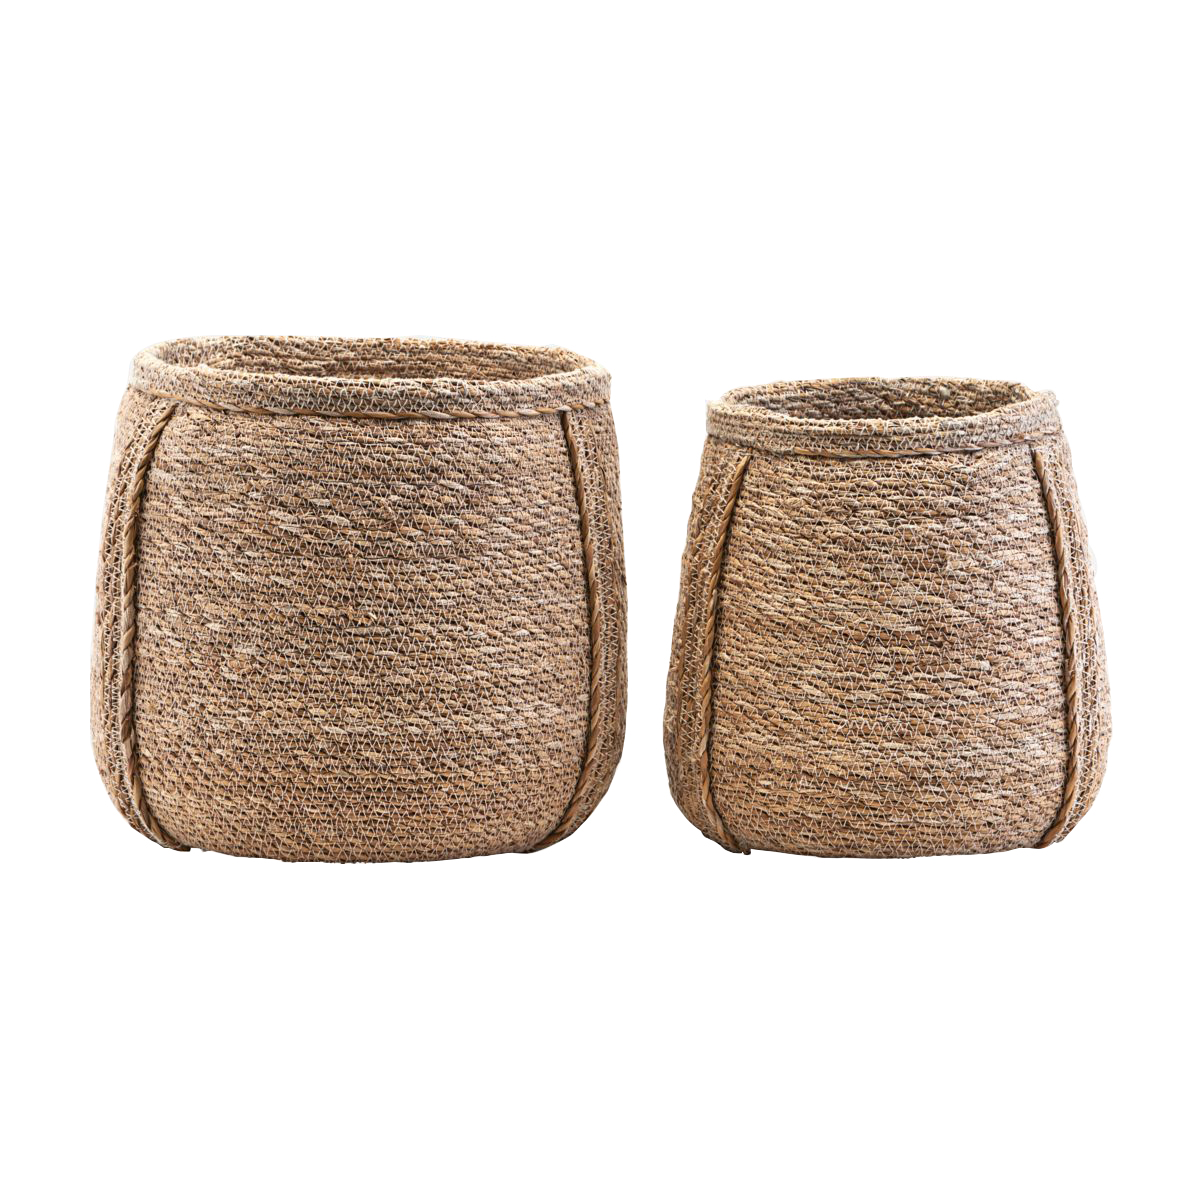 House Doctor - Plant Basket Set of 2 - Natur (GJ0103)